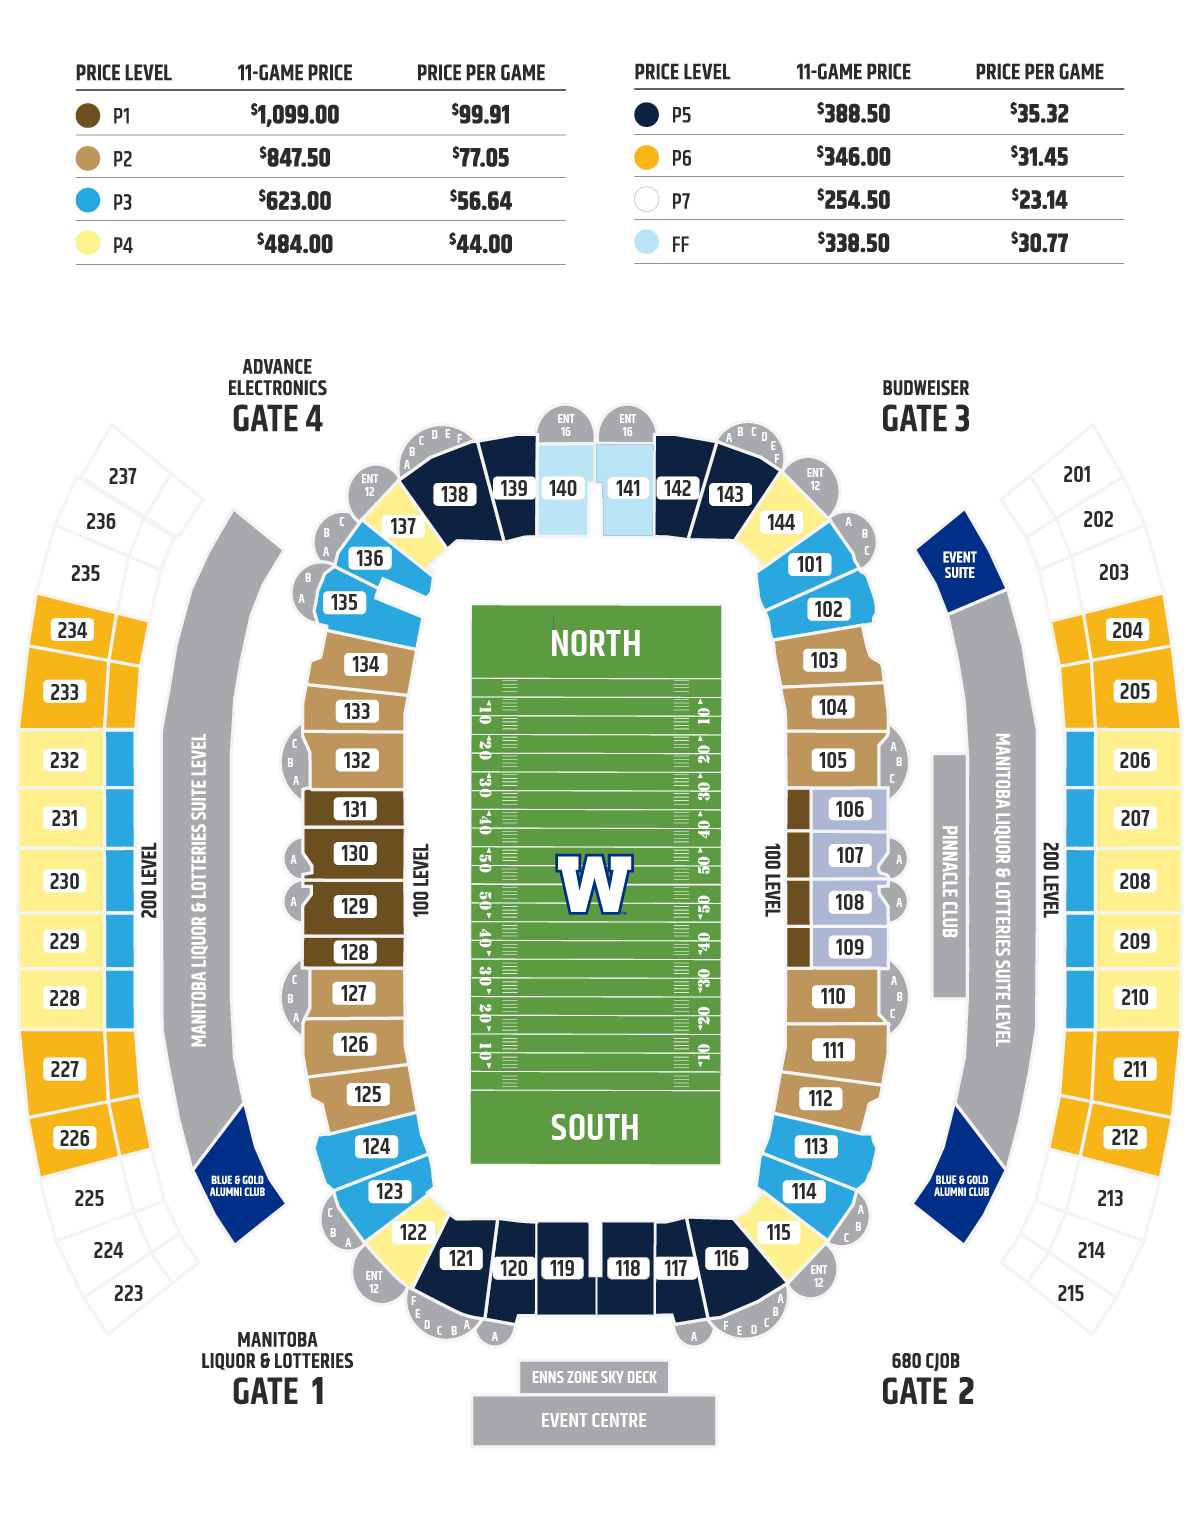 2017-Season-Ticket-Renewal-STM-Map-and-Pricing-1200-px-wide1